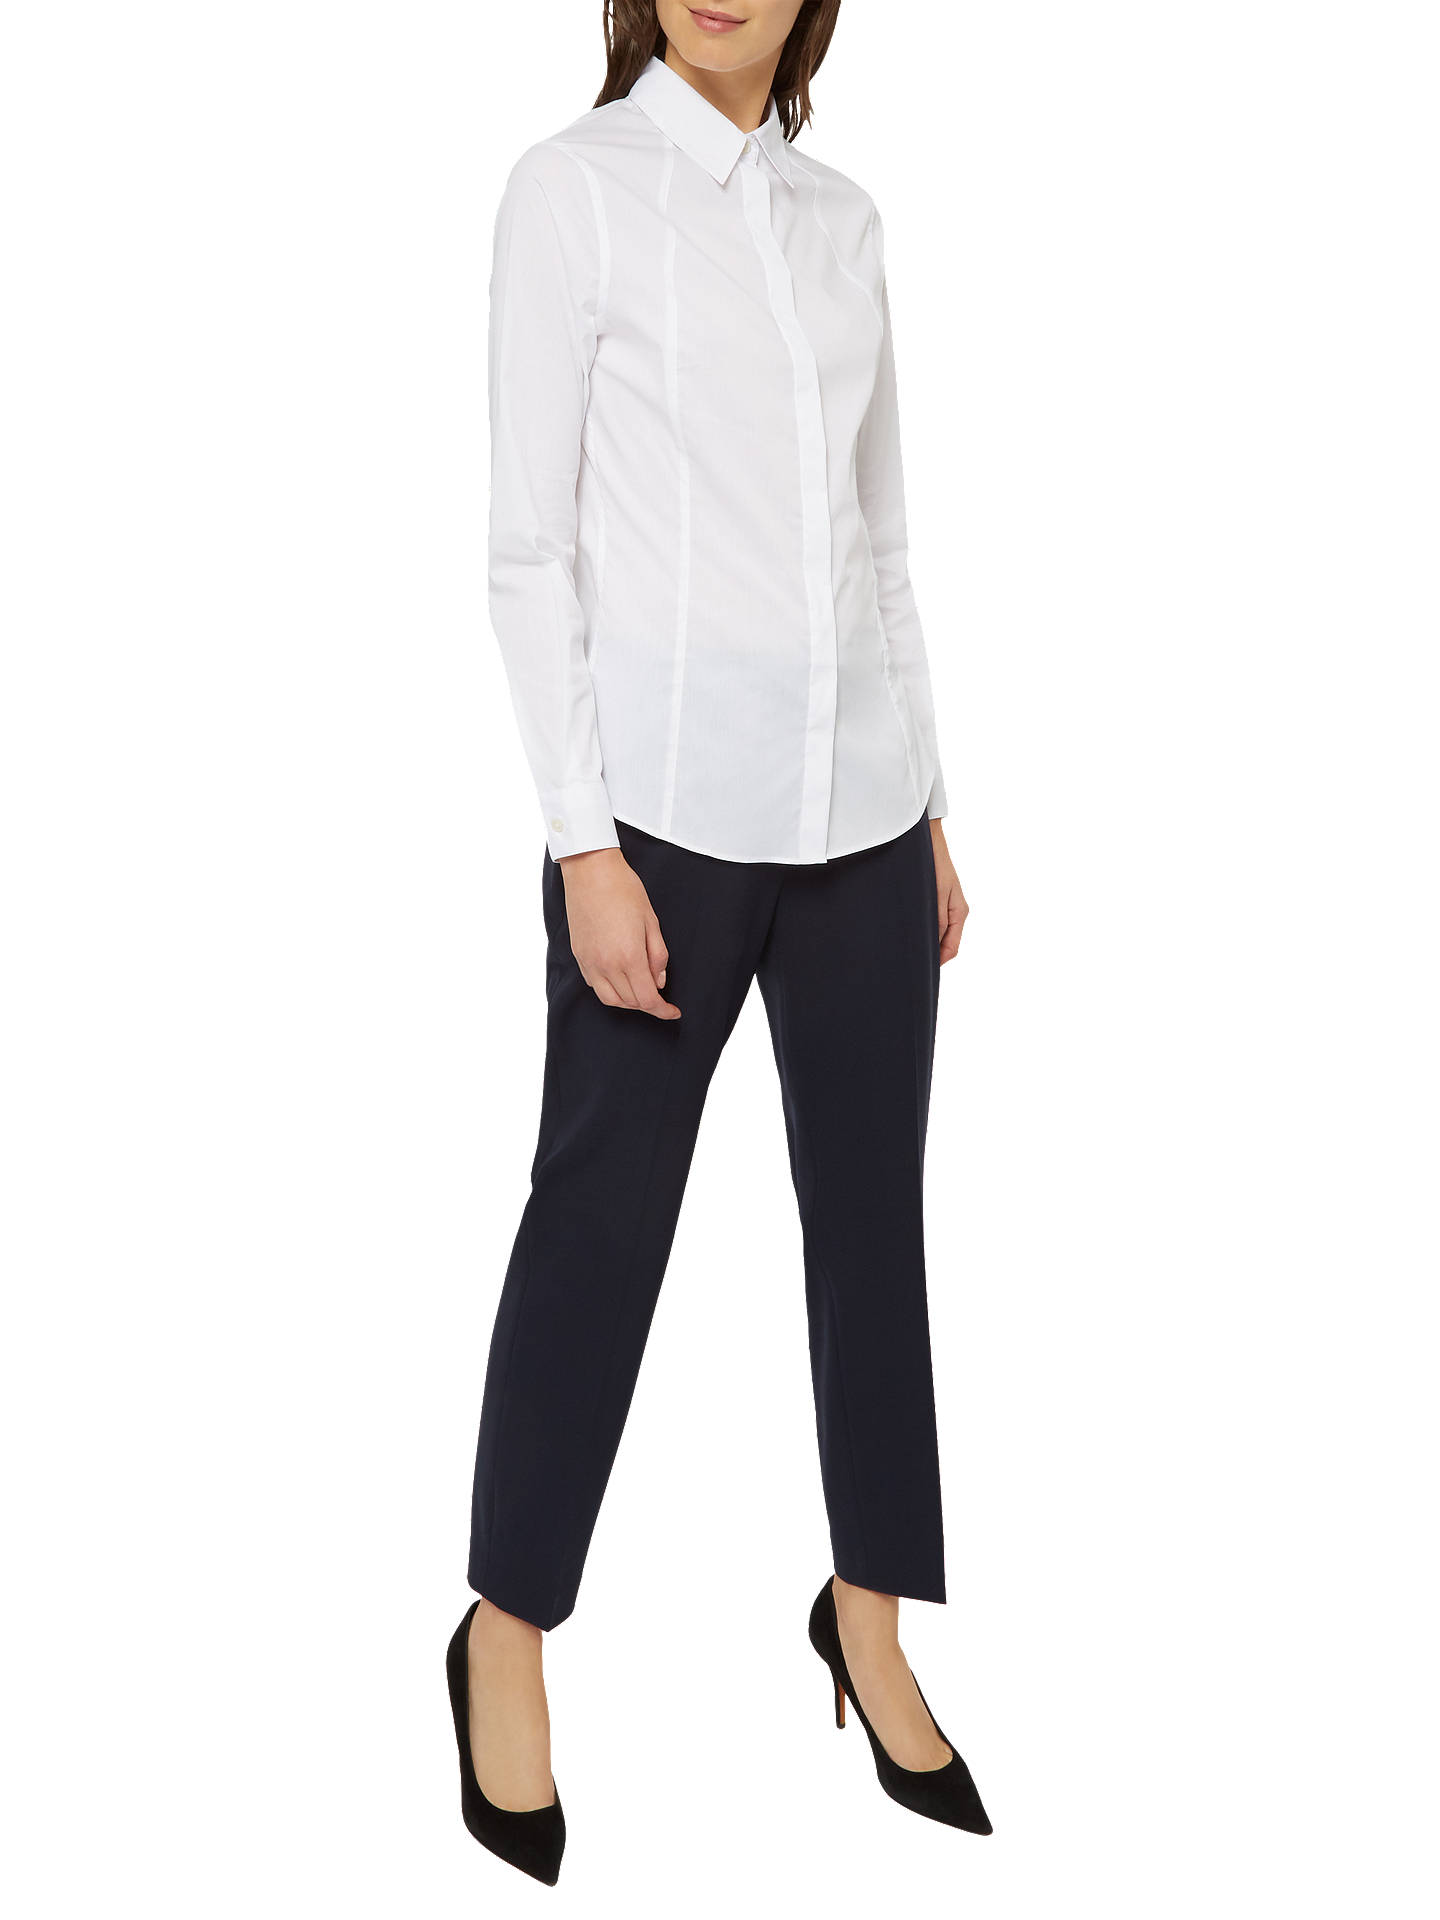 BuyJaeger Slim Fit Classic Long Sleeve Shirt, White, 6 Online at johnlewis.com